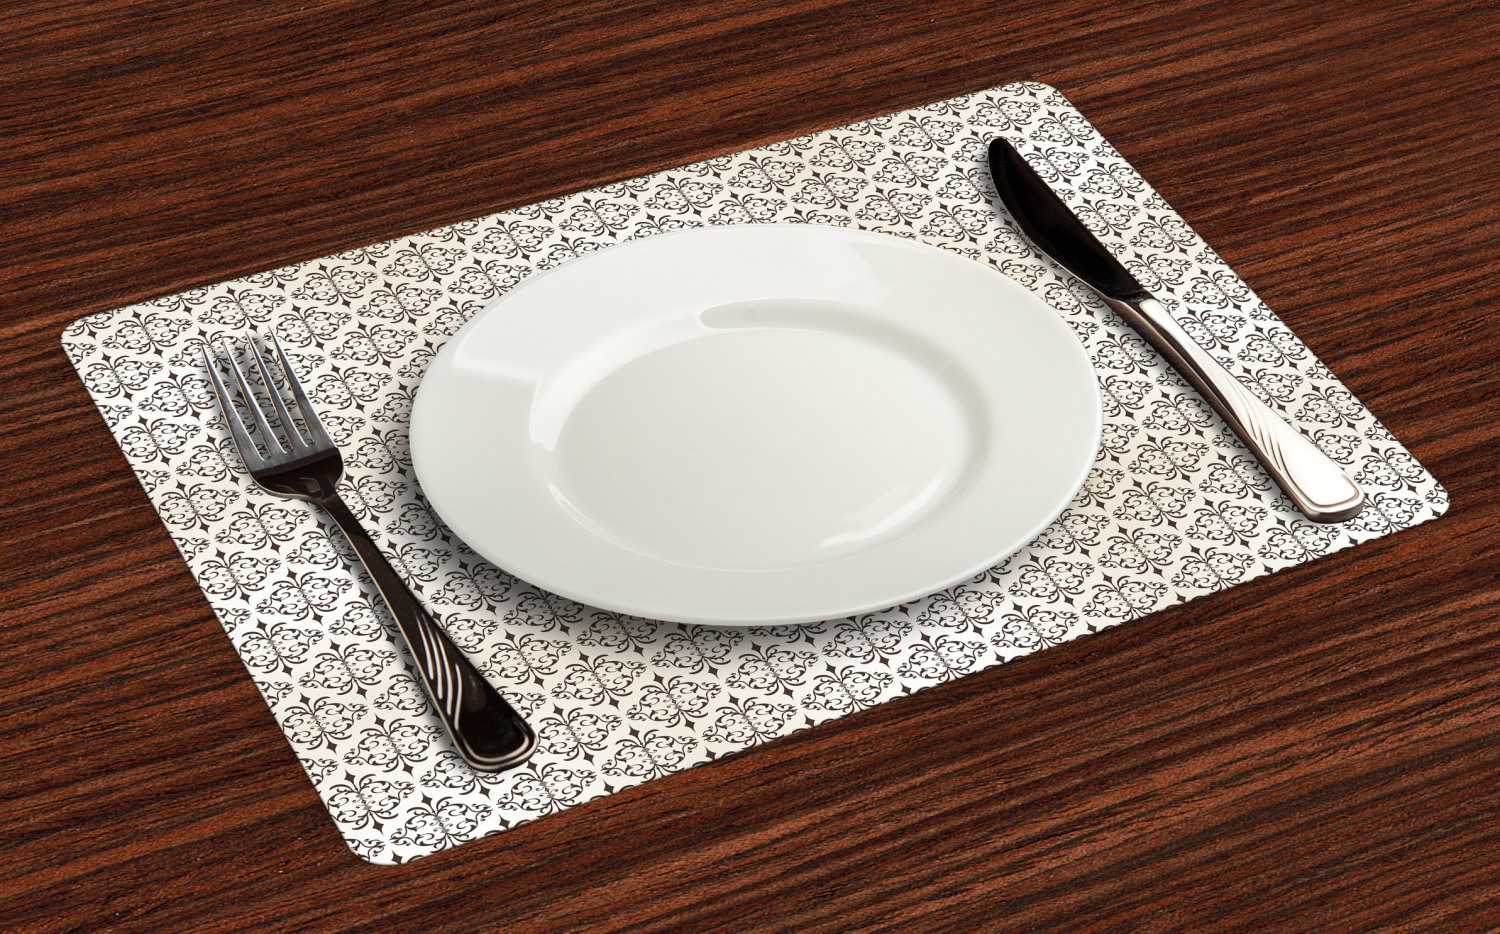 Ambesonne-Fabric-Place-Mats-Set-of-4-Placemats-for-Dining-Room-and-Kitchen-Table thumbnail 213